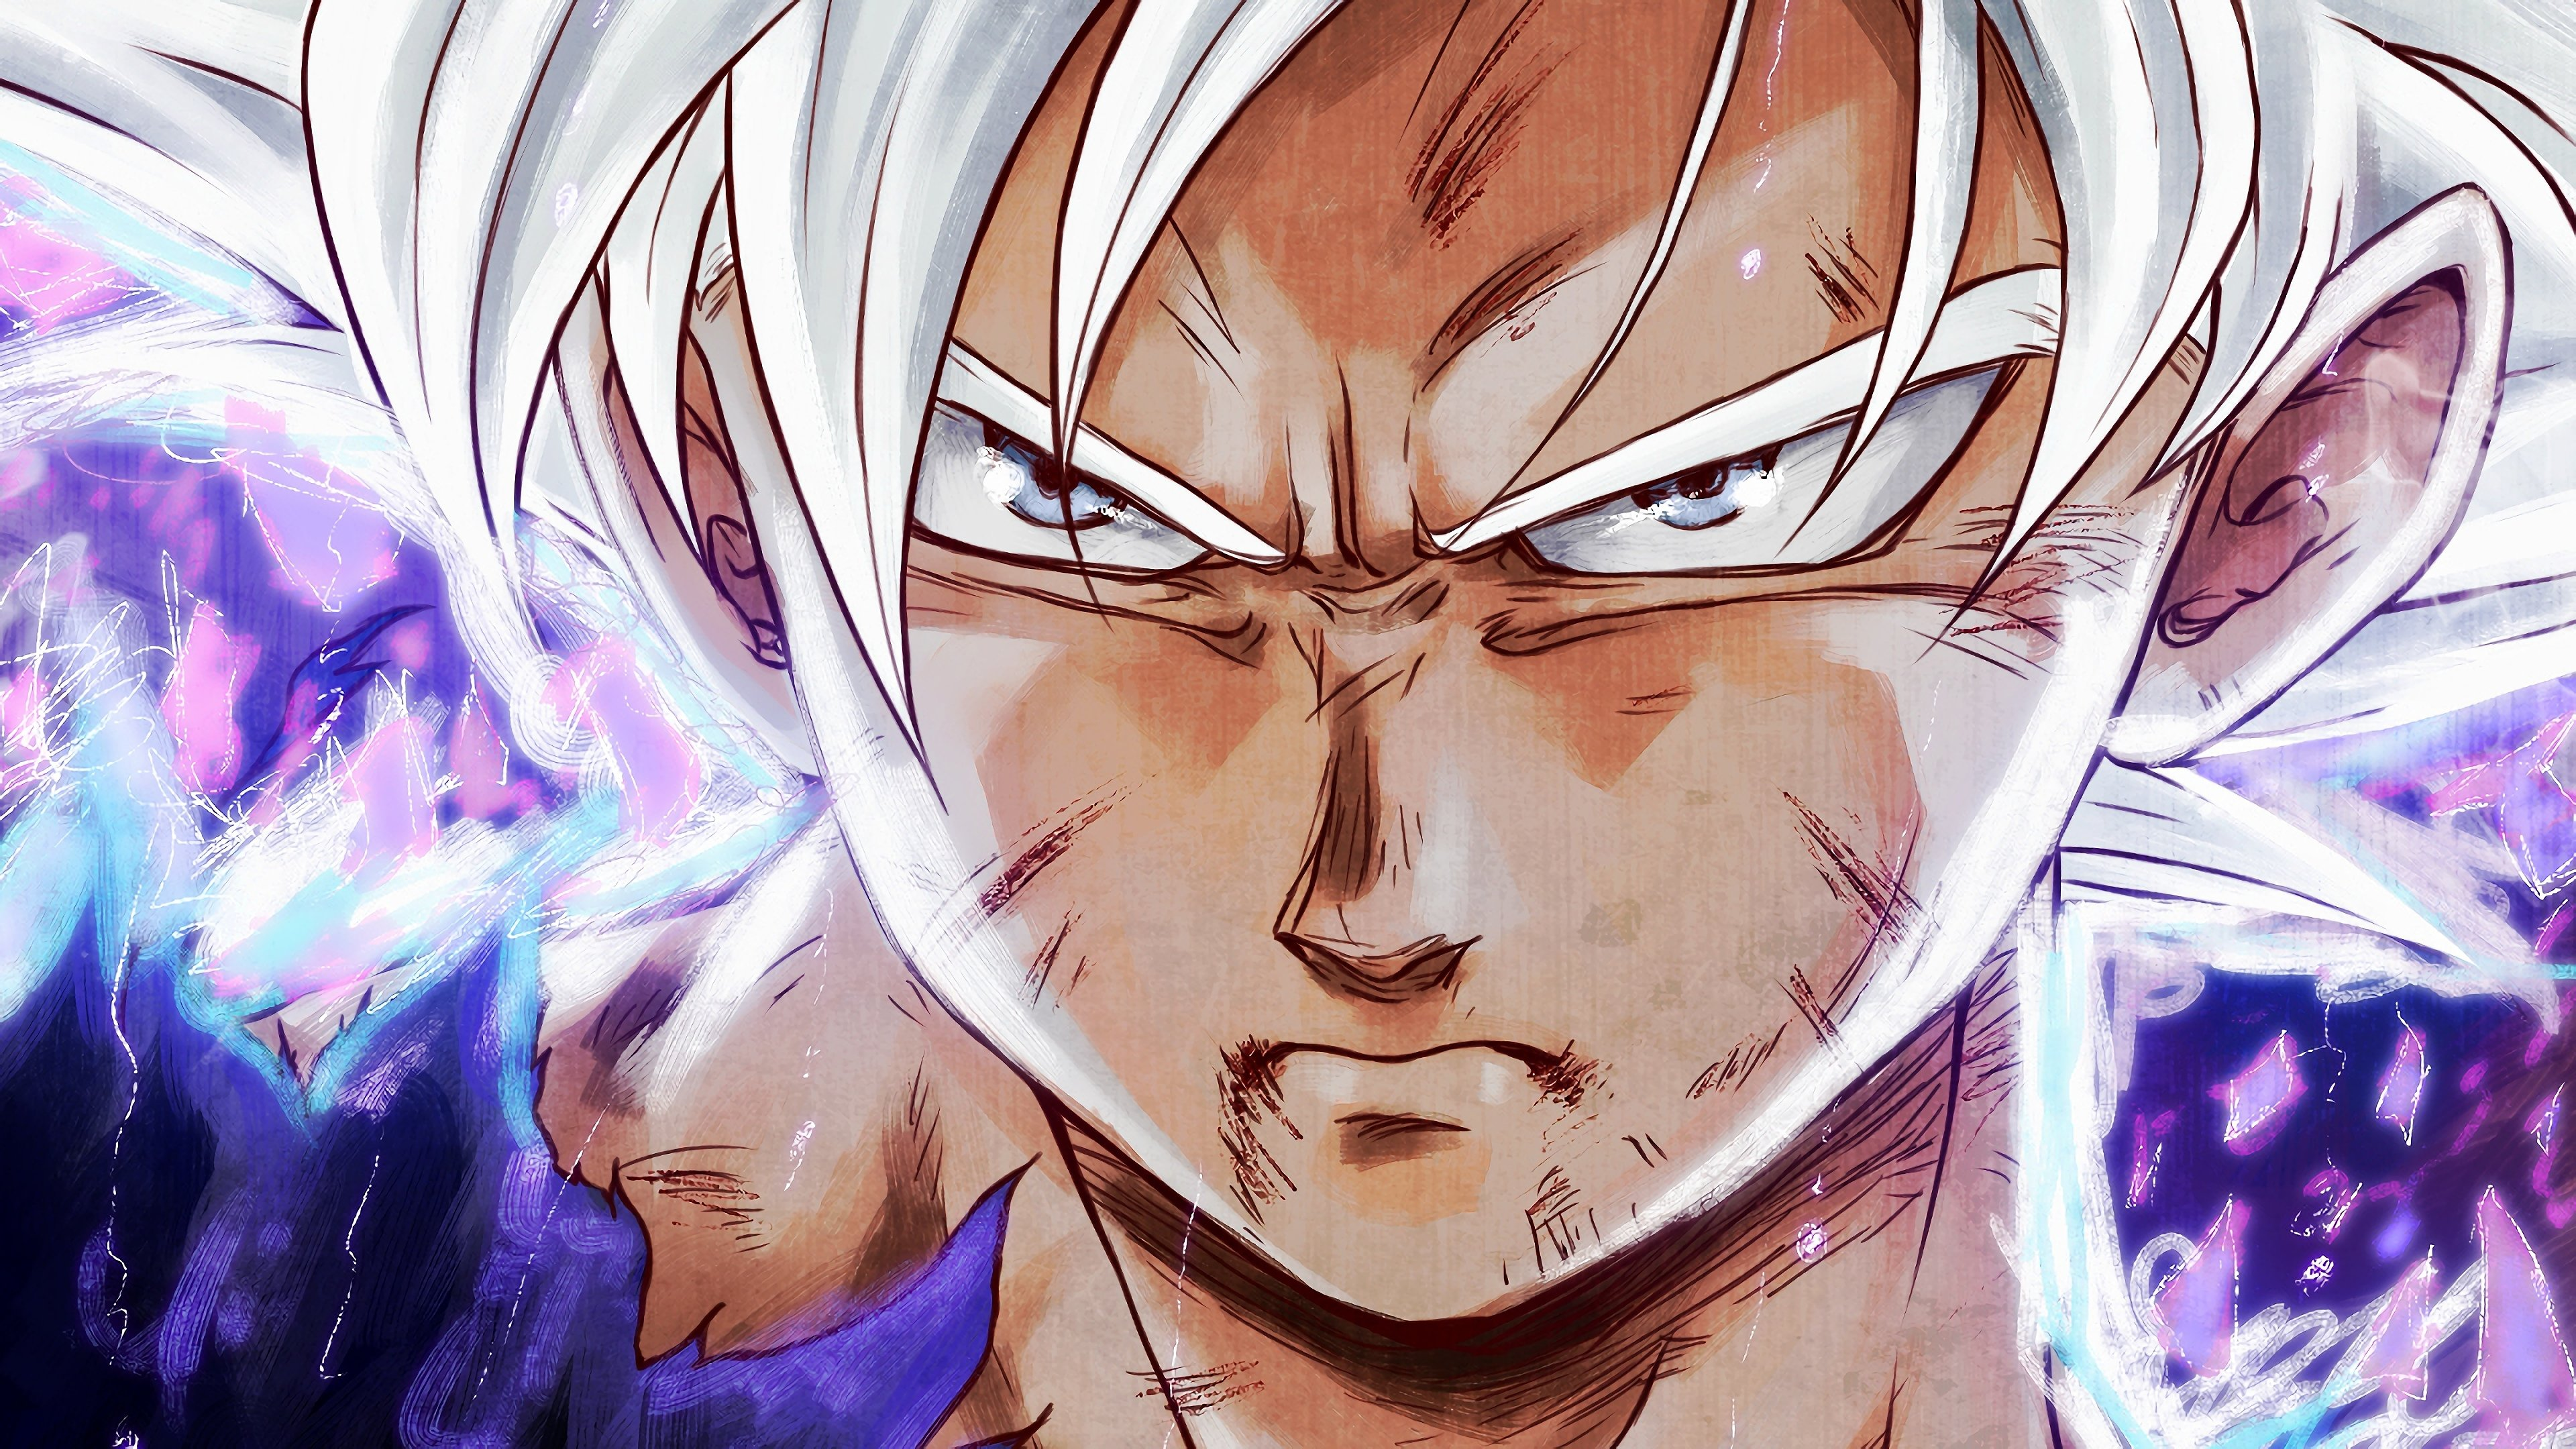 Goku 4k wallpapers for your desktop or mobile screen free - Goku ultra instinct mastered wallpaper ...